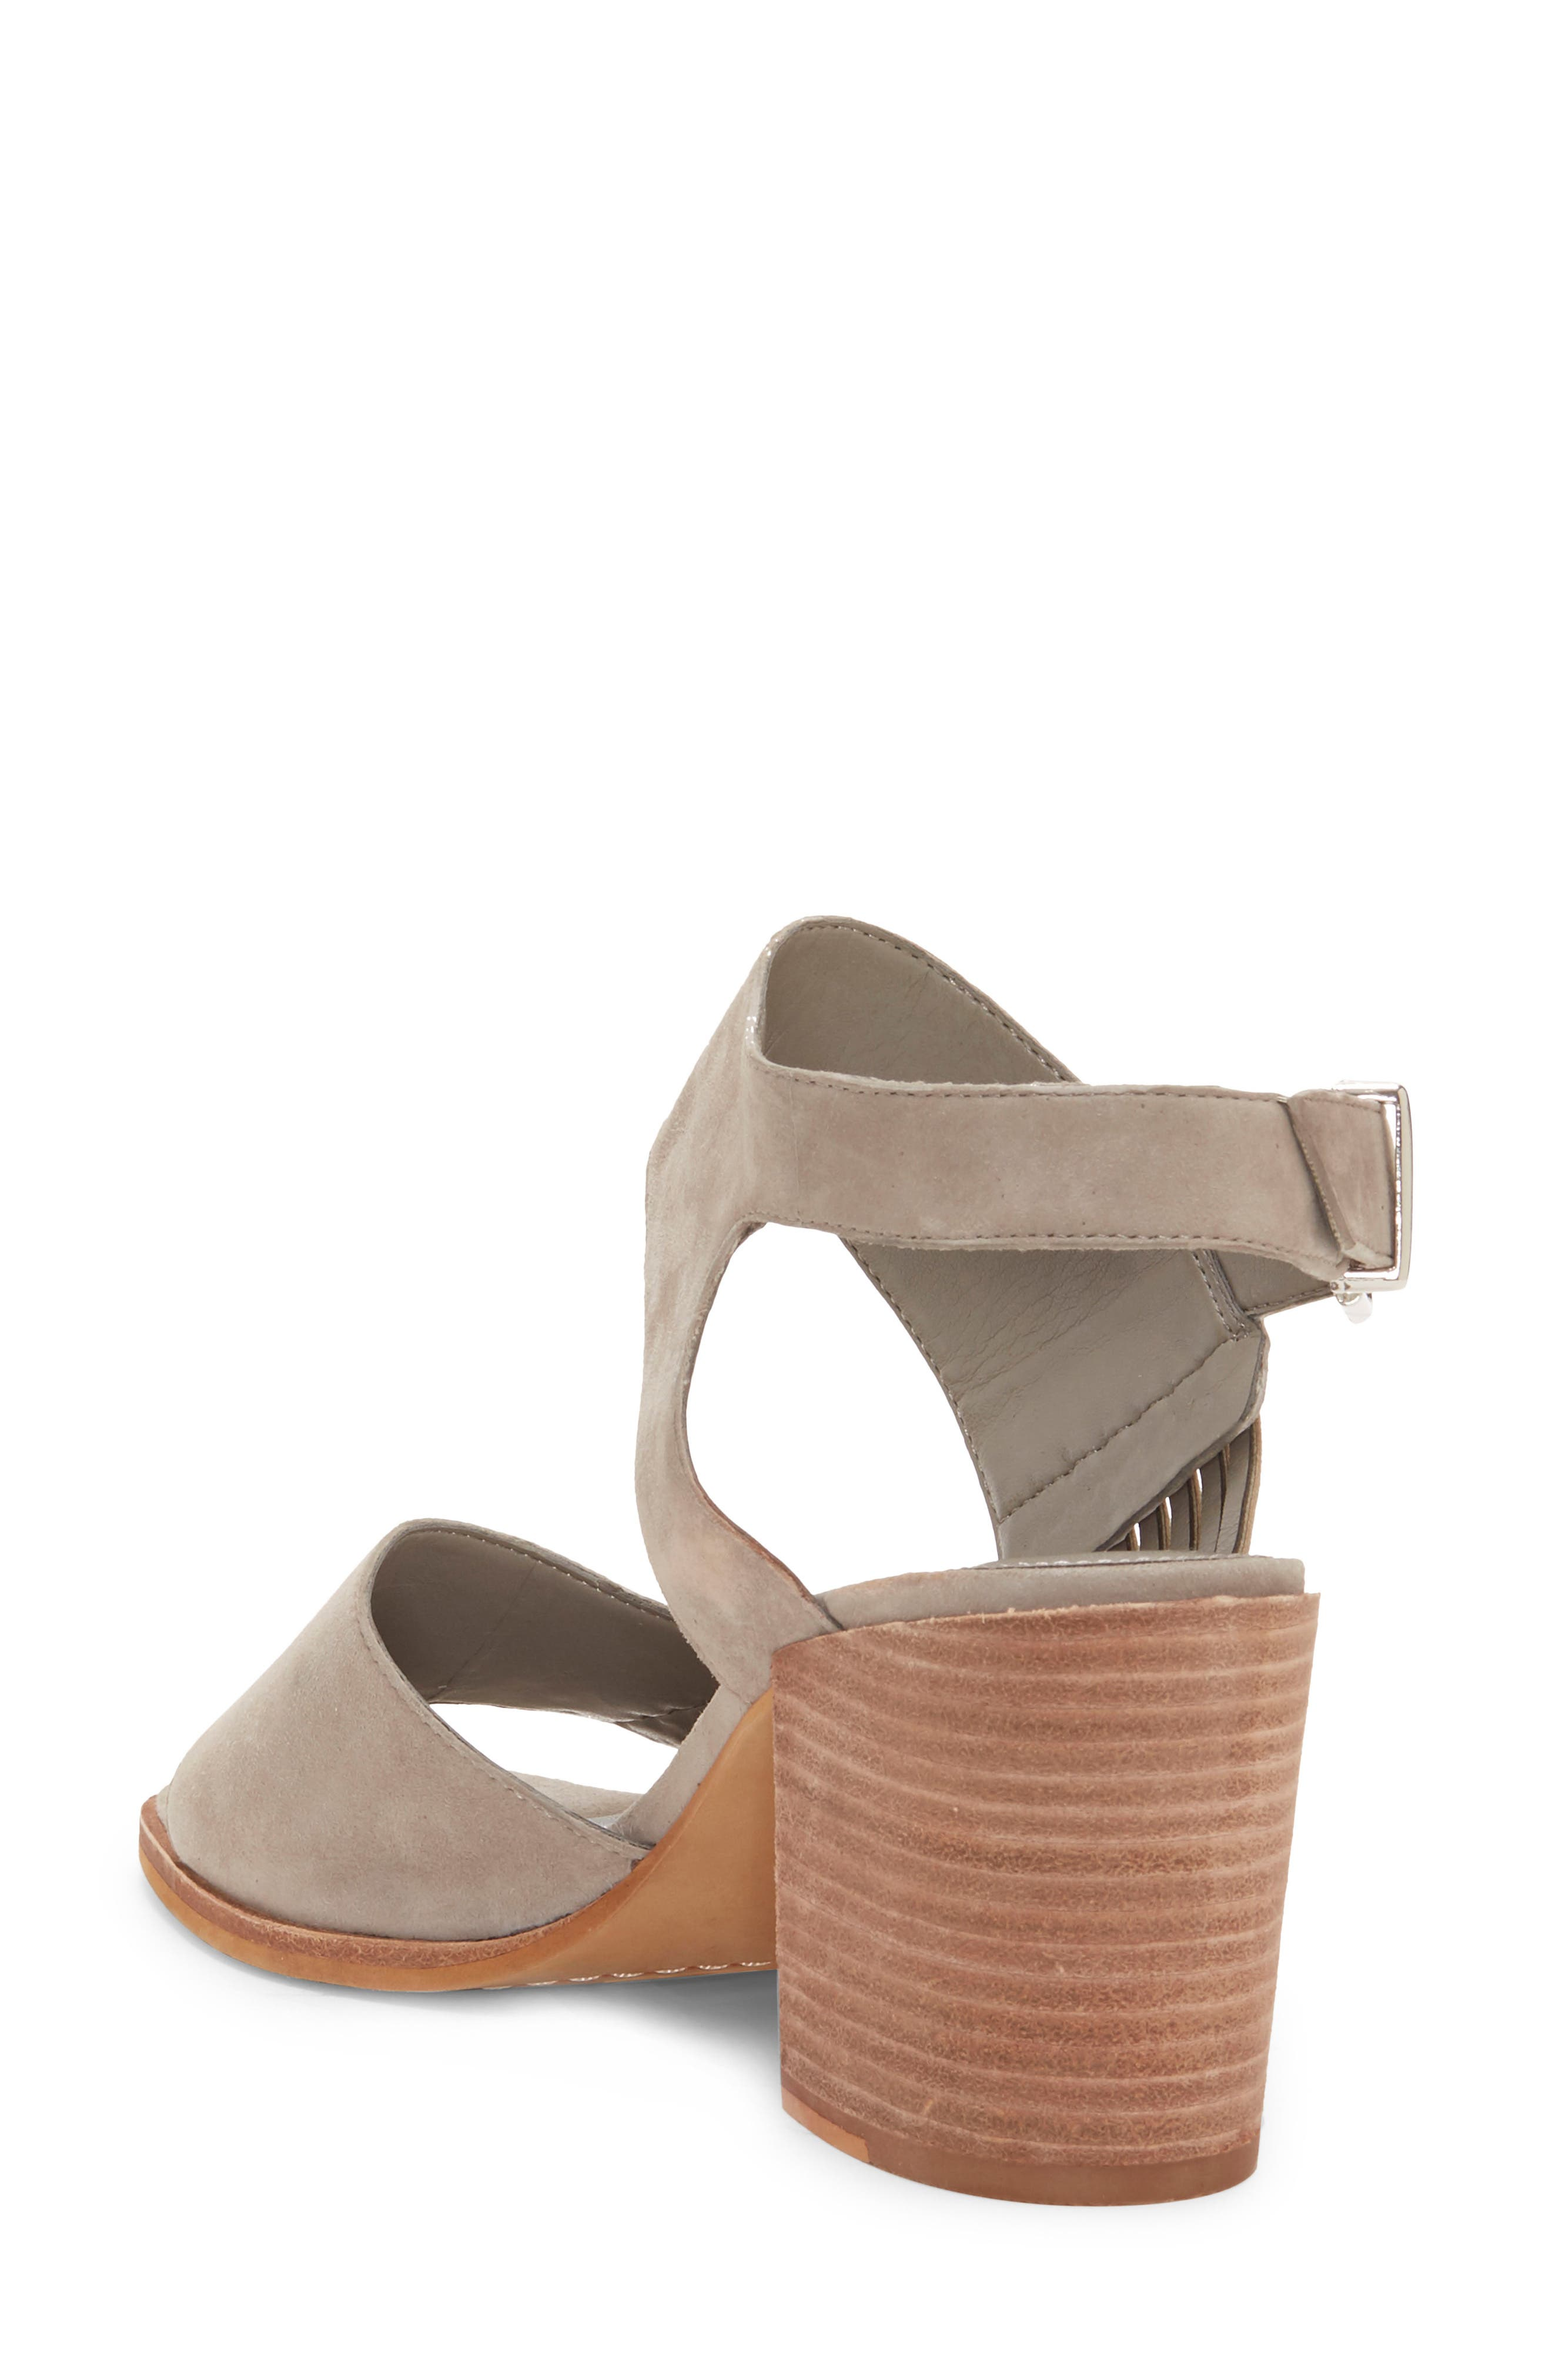 VINCE CAMUTO, Karmelo Slingback Sandal, Alternate thumbnail 2, color, STORM GREY LEATHER